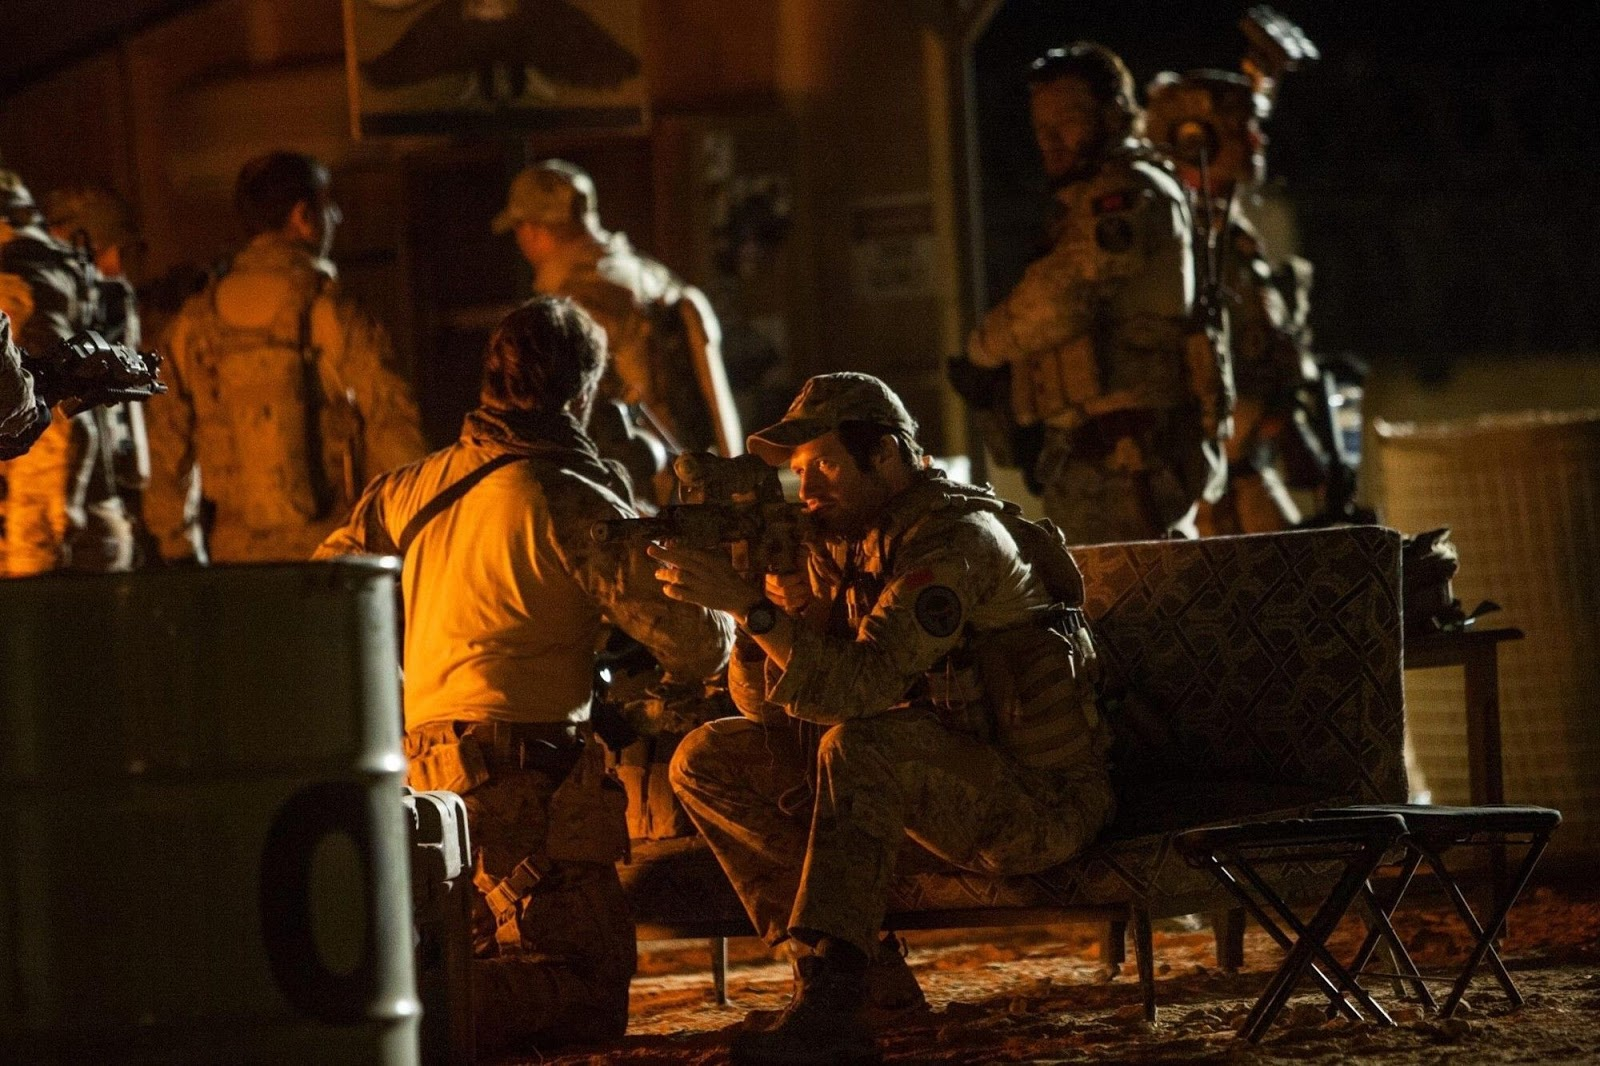 zero dark thirty hd movie torrent download